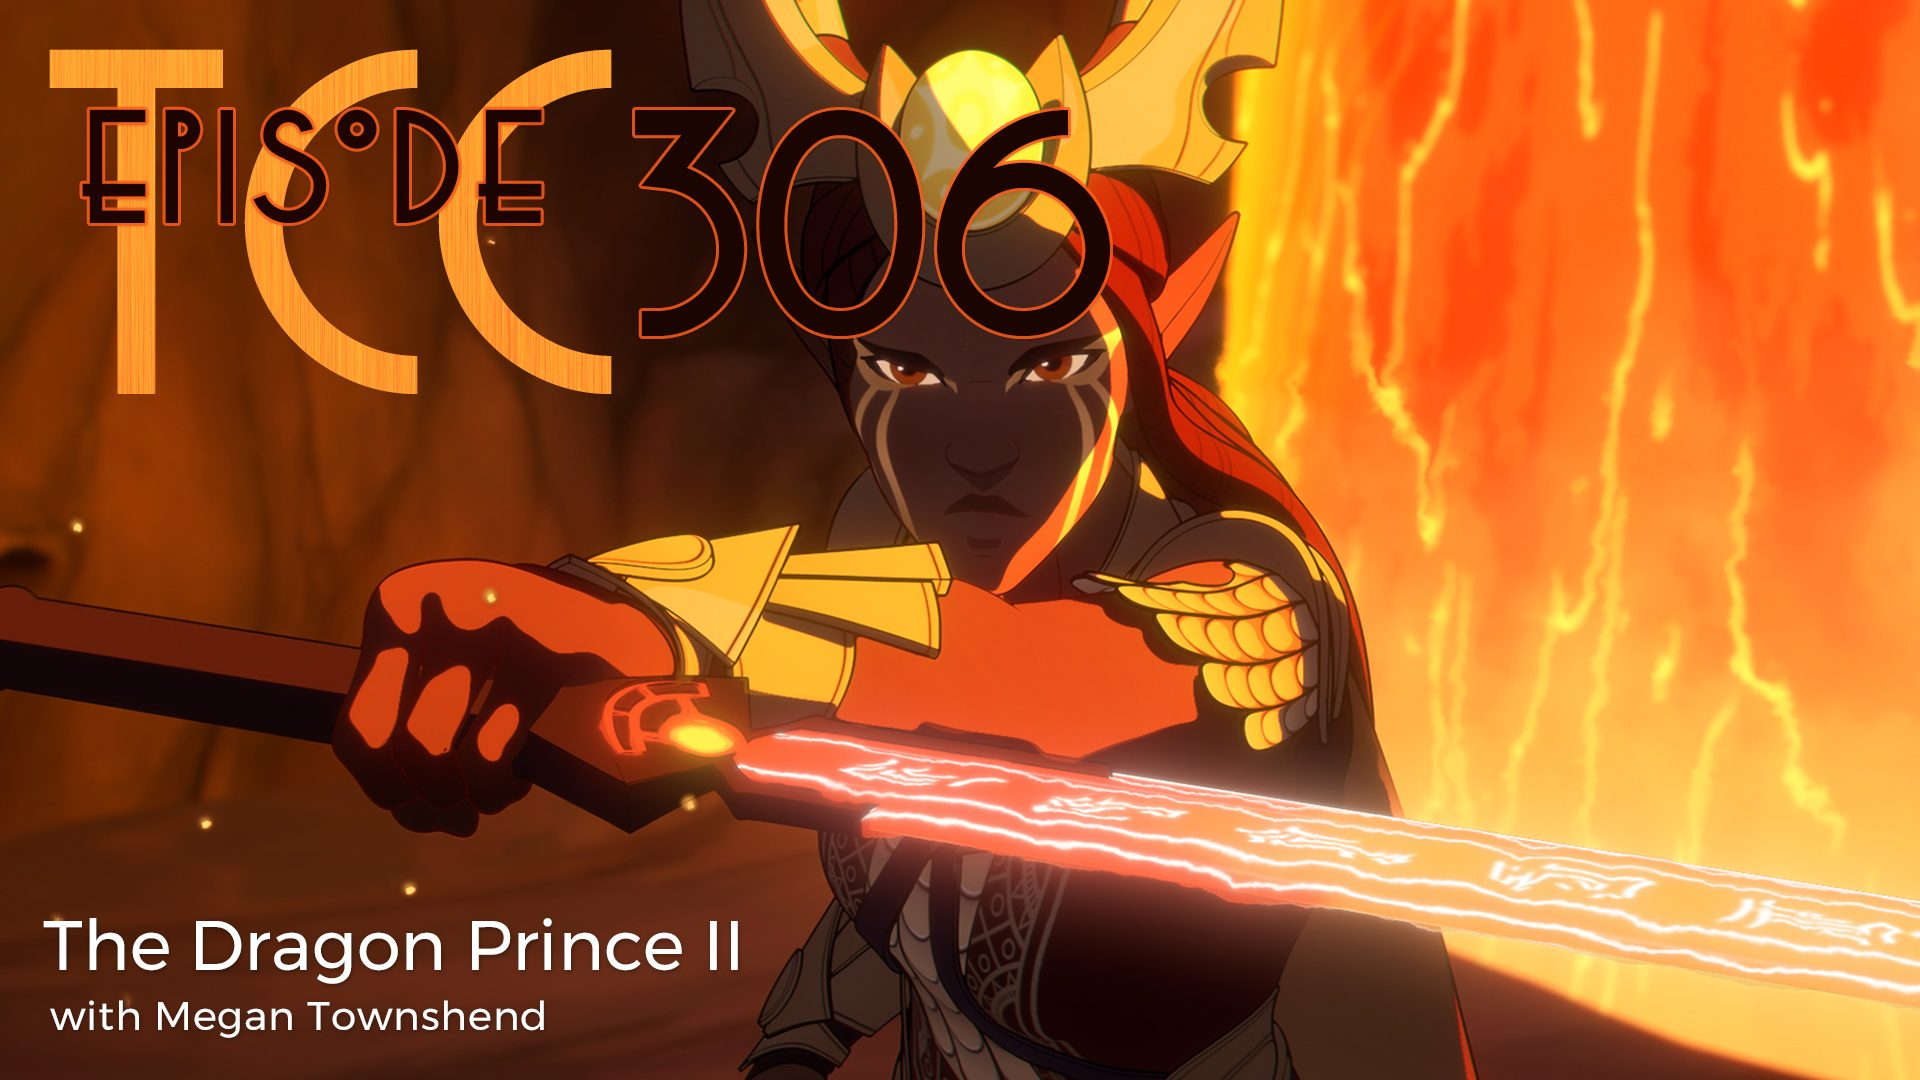 The Citadel Cafe 306: The Dragon Prince II